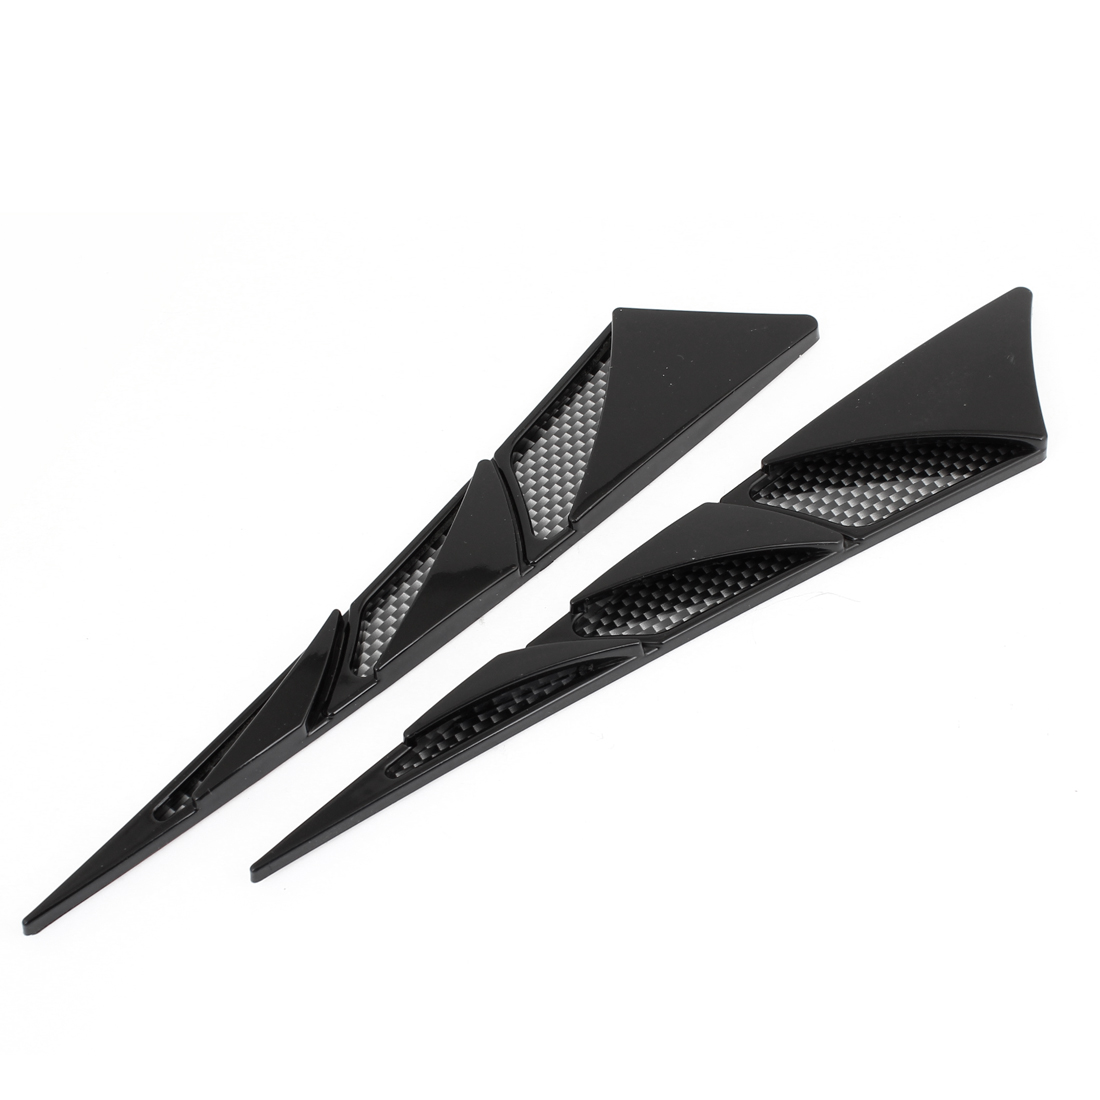 "2 Pcs 9.3"" Carbon Fiber Pattern Air Flow Fender Sticker Black for Car"